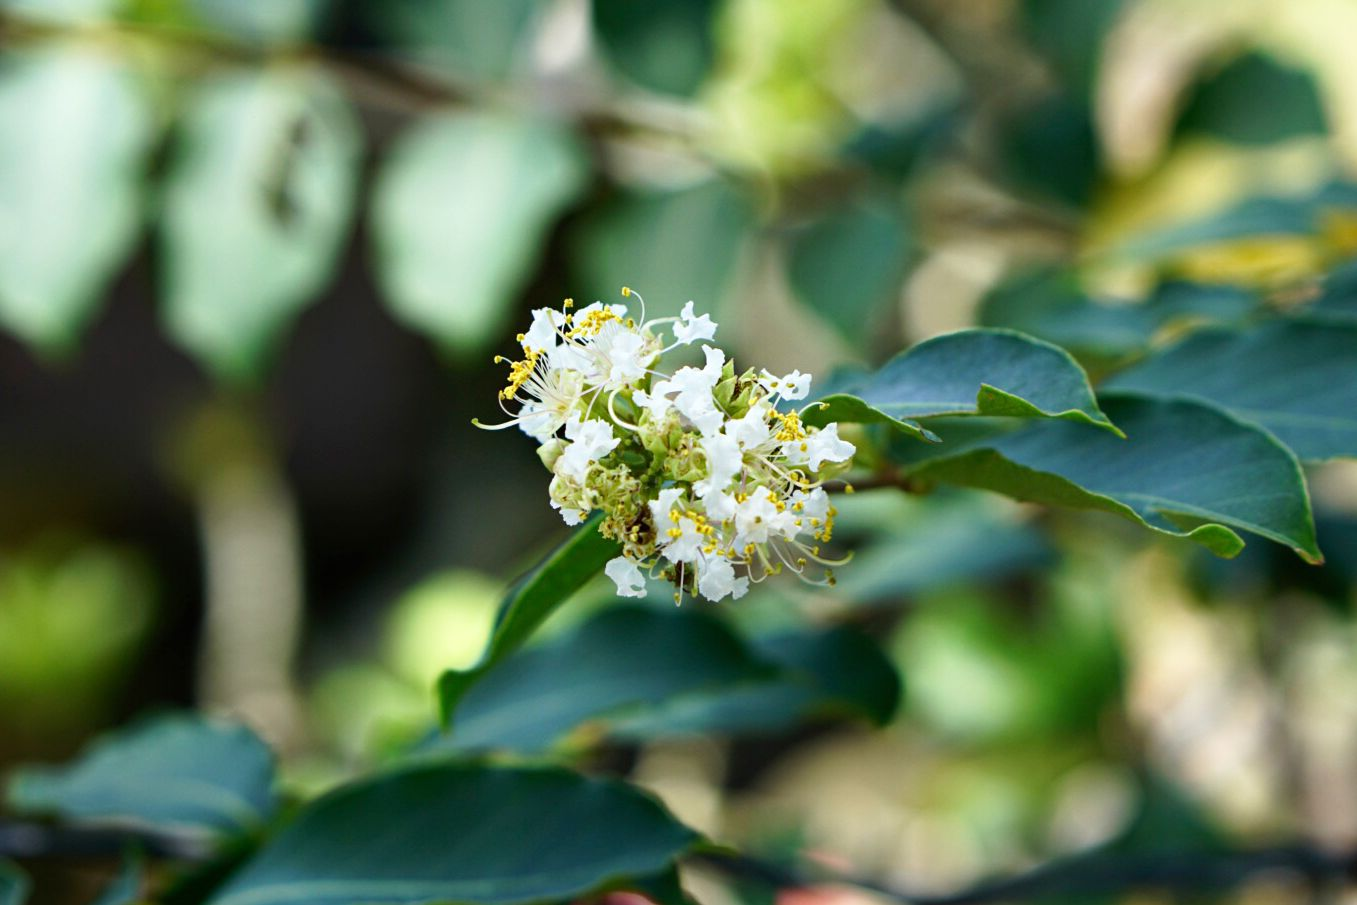 Natchez crepe myrtle tree branch with small white blossoms